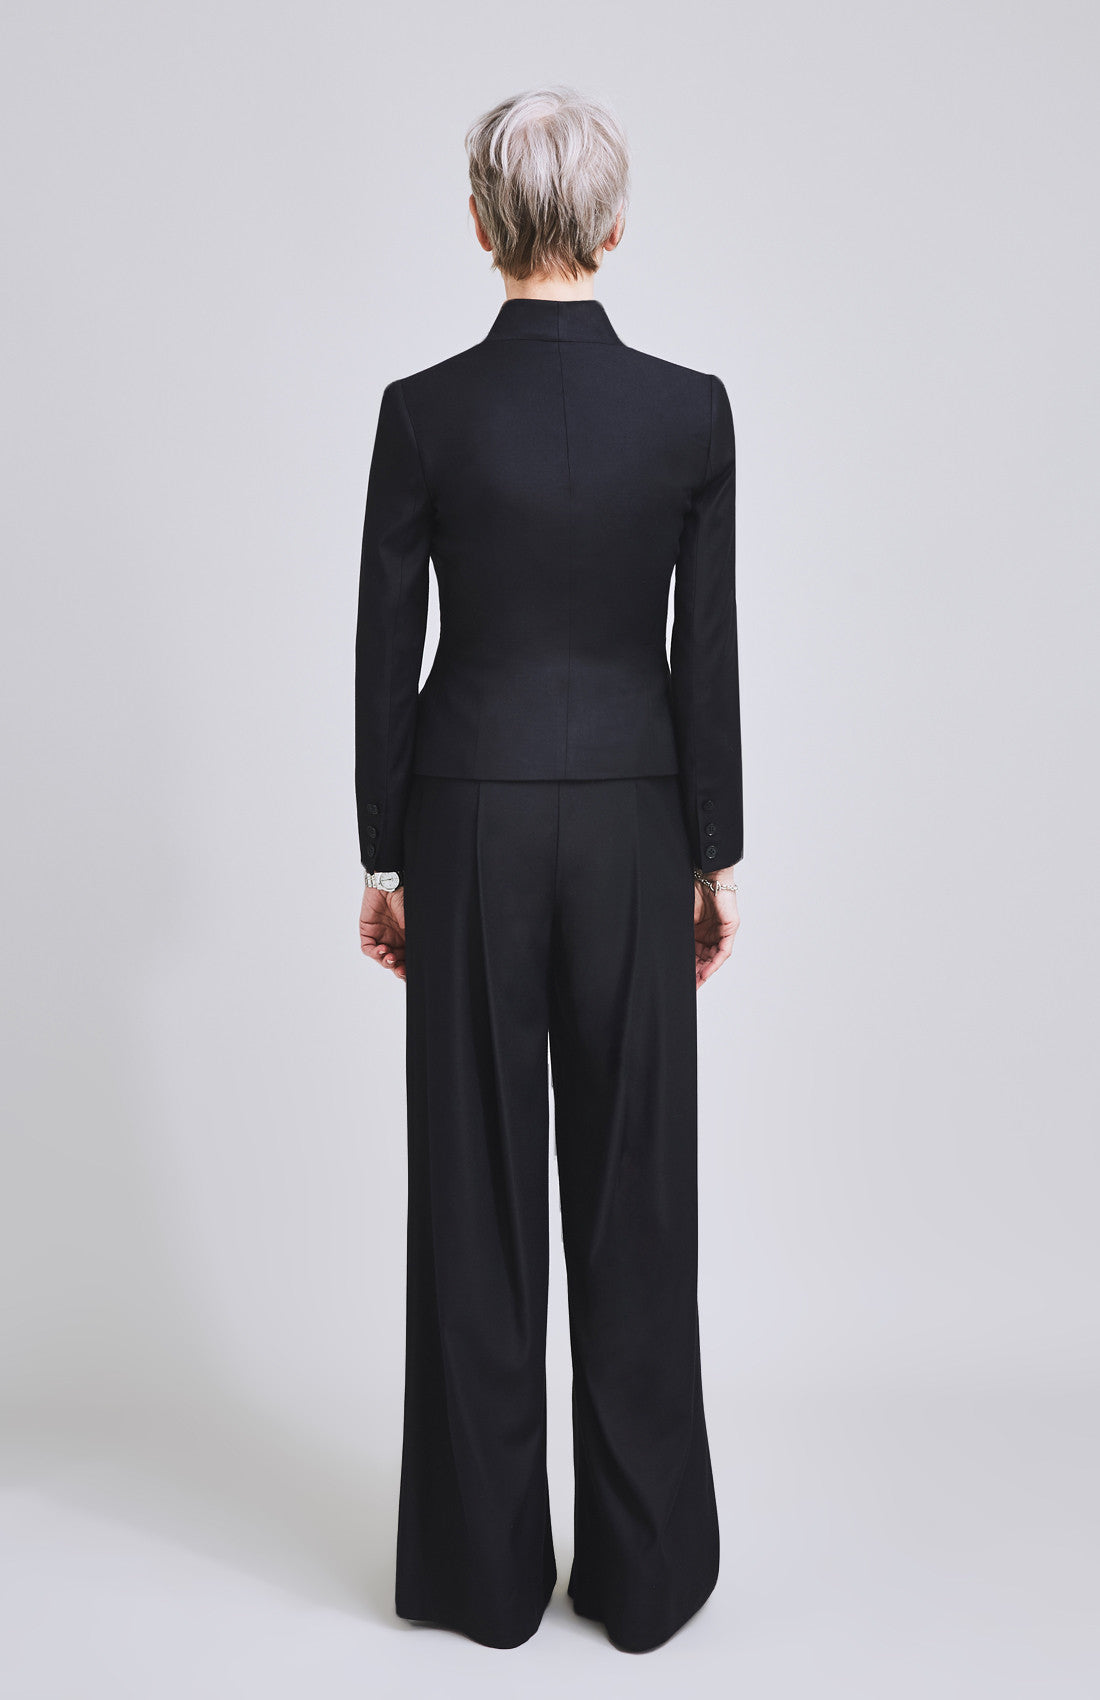 Women's luxury tailored high rise wide leg suit trouser for the office black